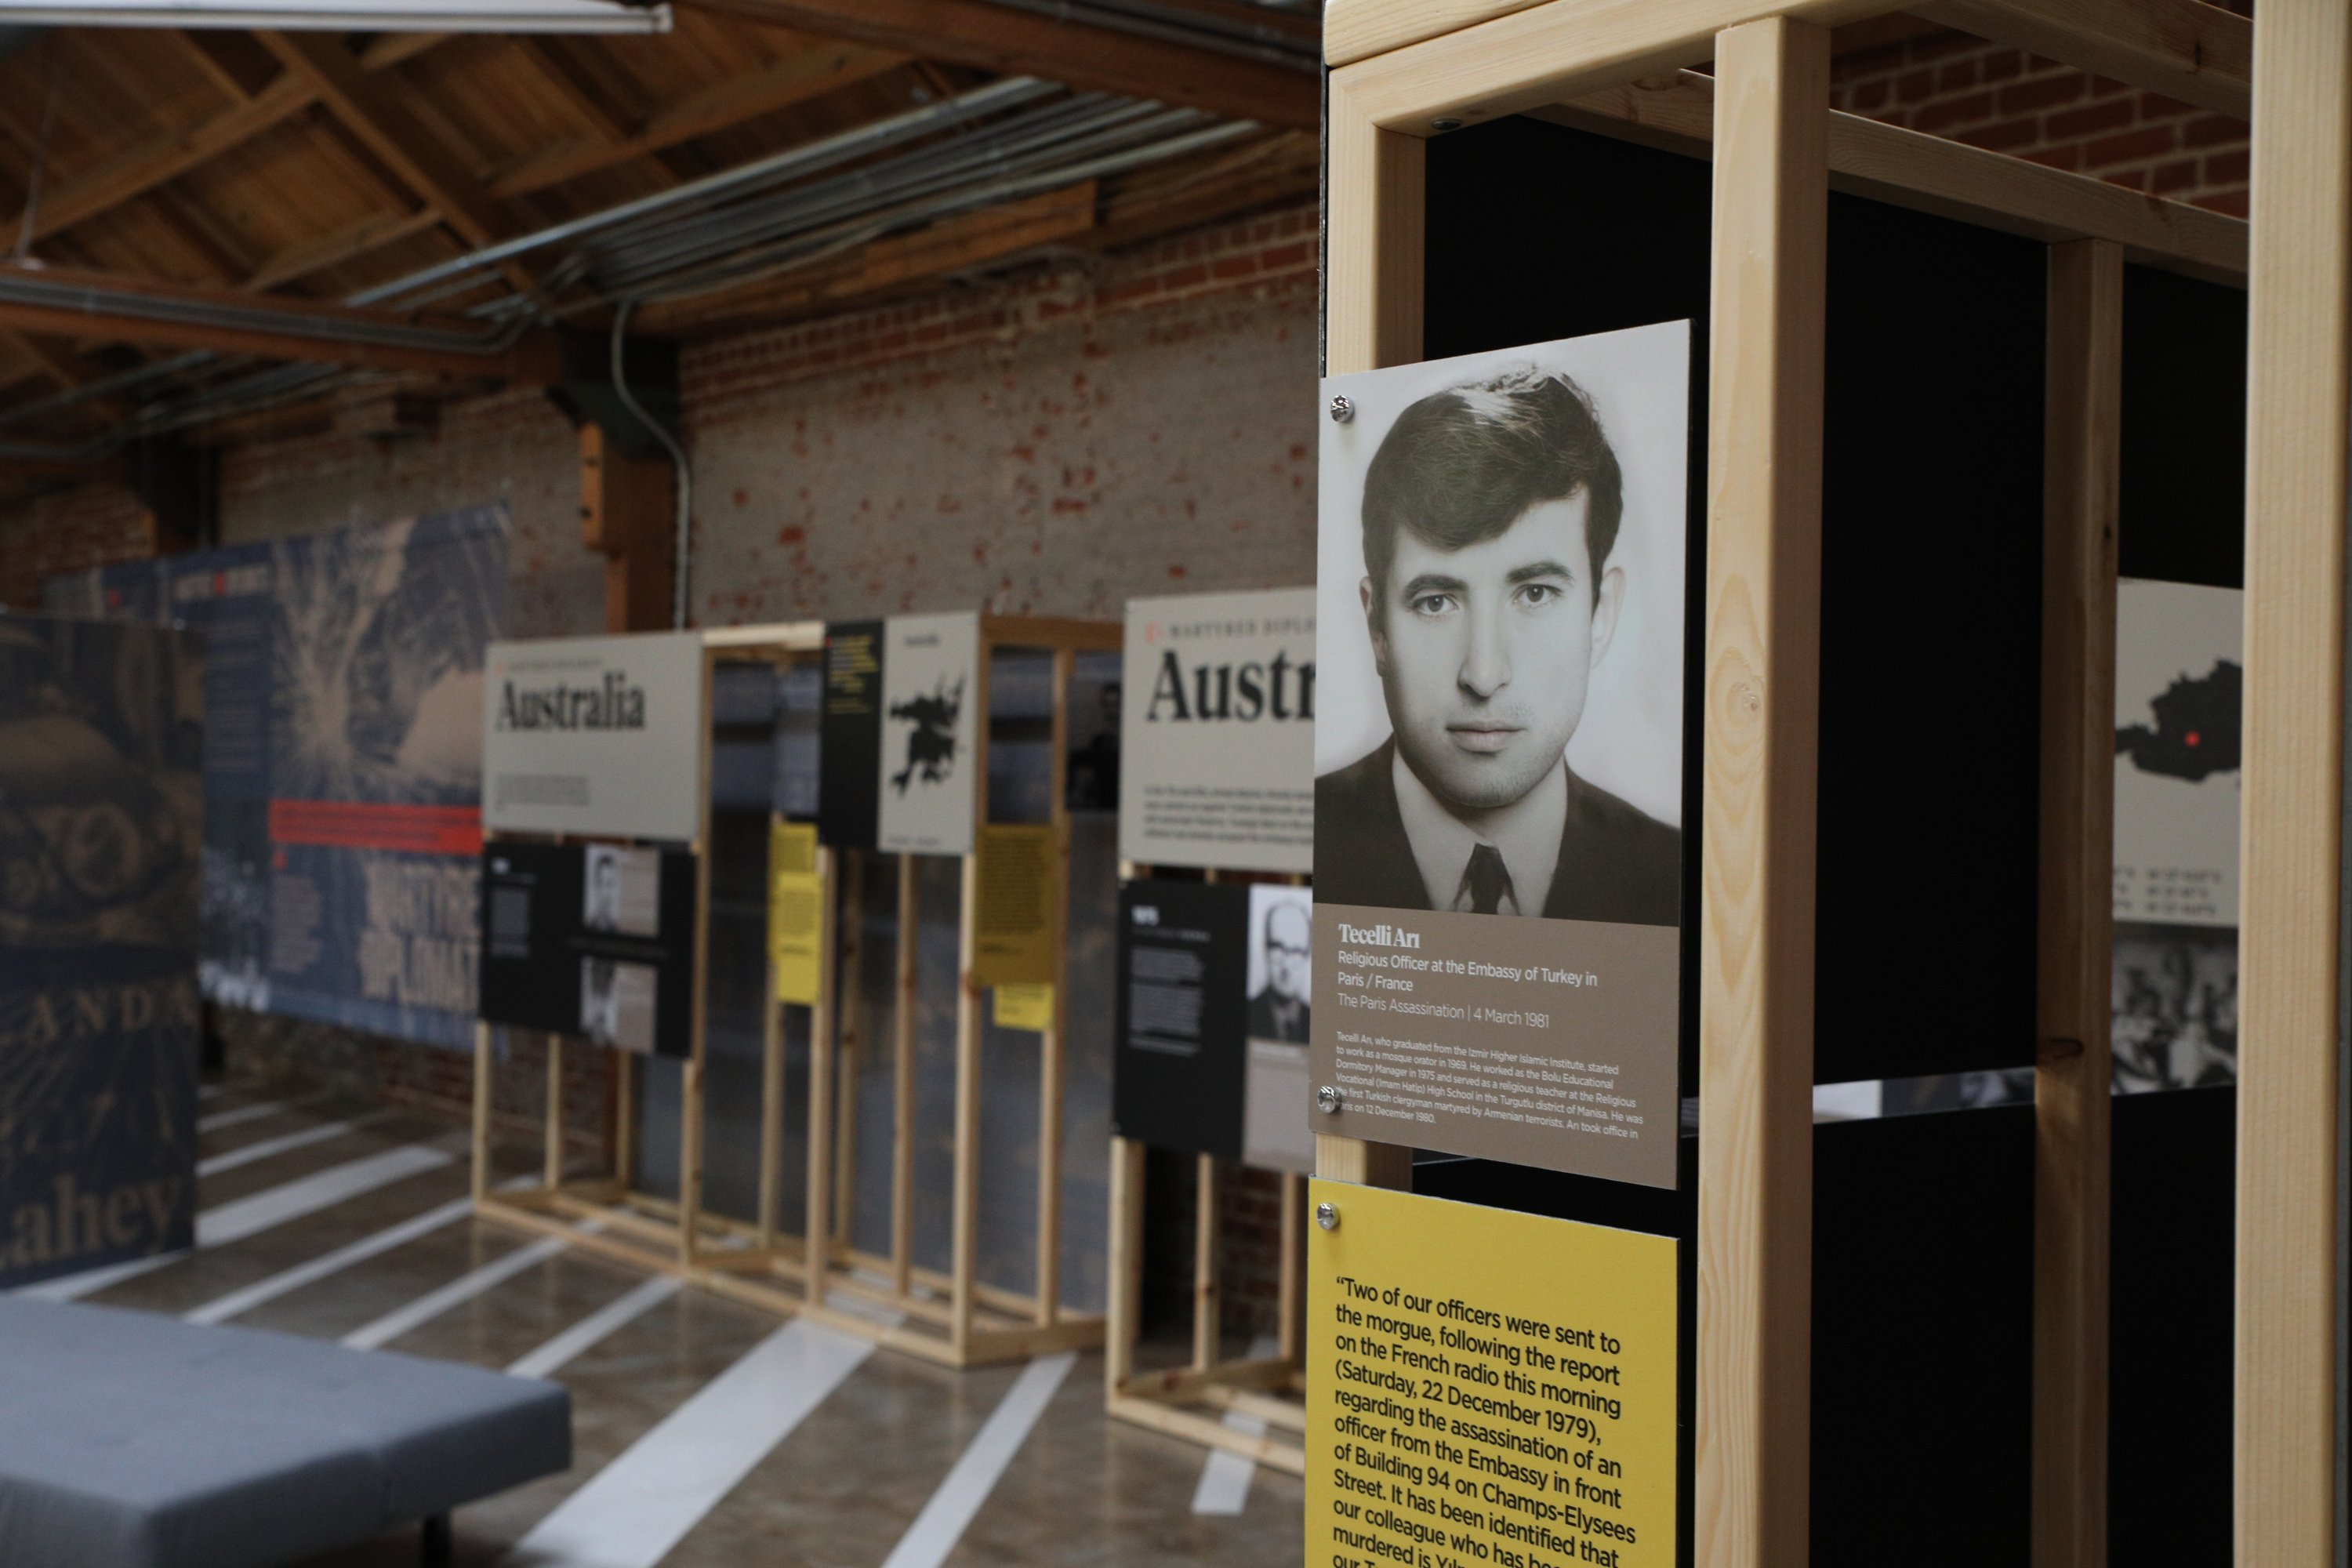 Turkey'sDirectorate of Communications opens an exhibition in memory of Turkish diplomats killed by Armenian terrorists, in Los Angeles, U.S., April 24, 2021. (AA)